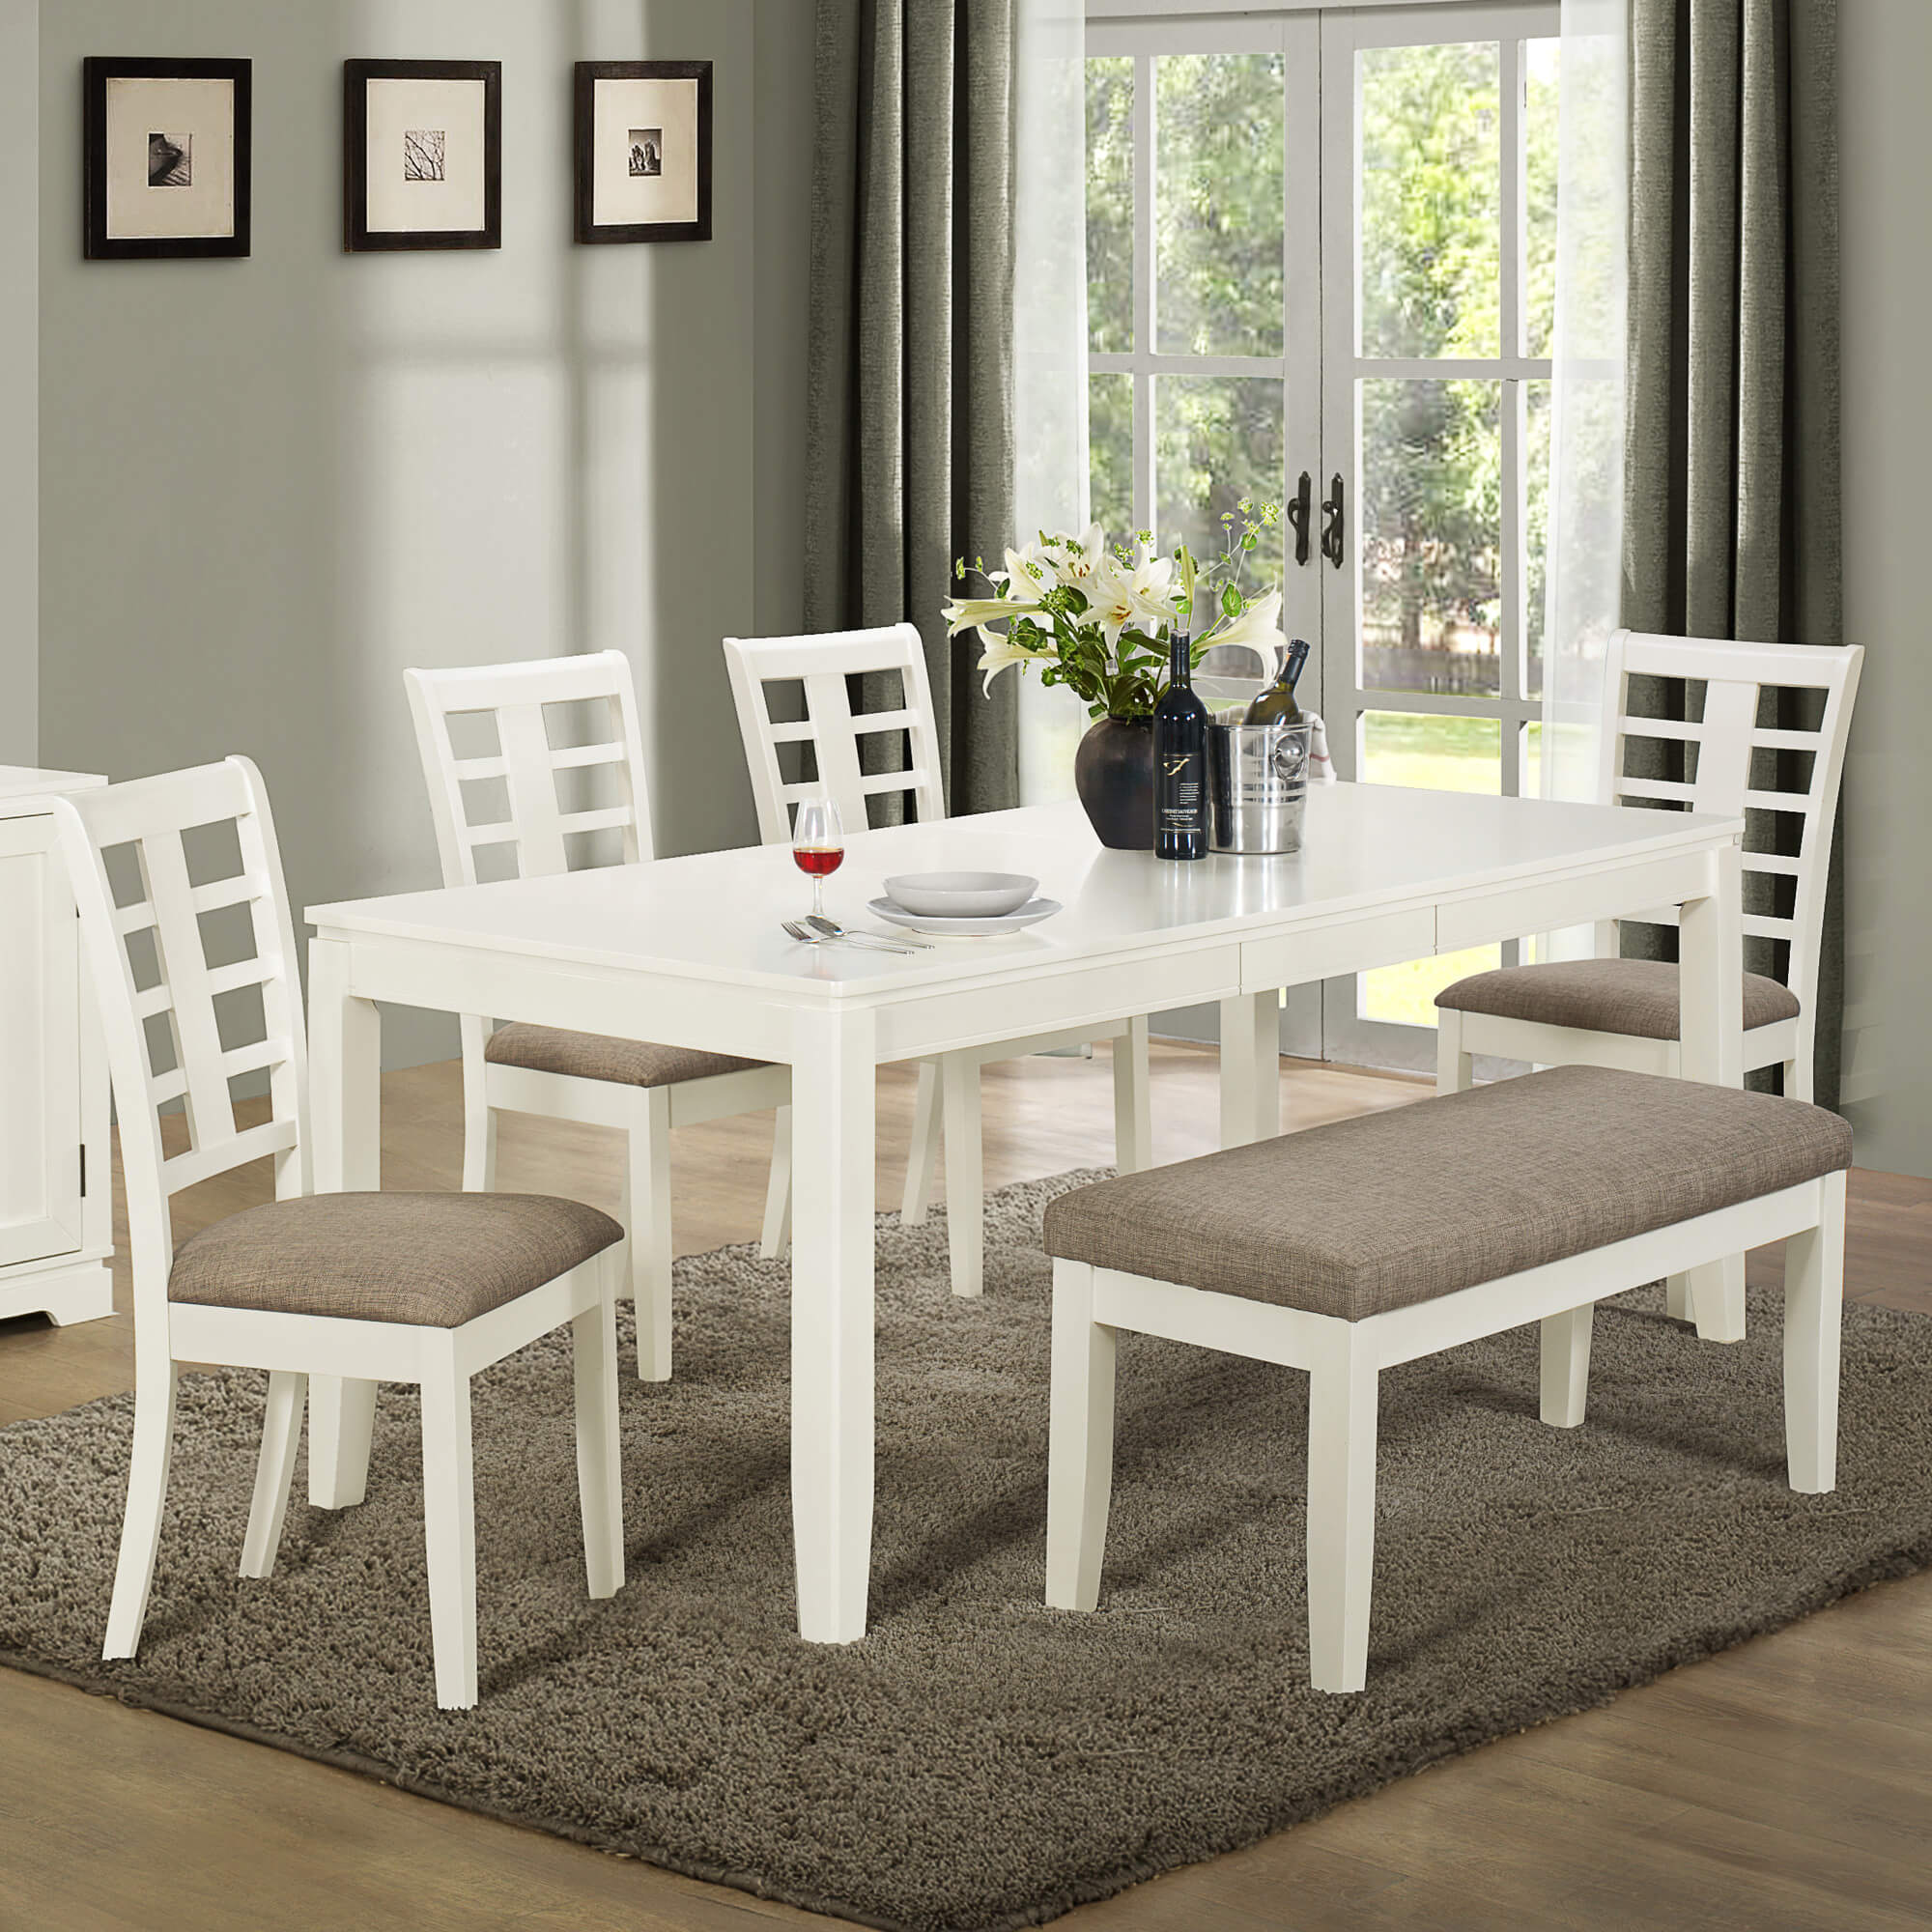 Built With Solid Wood And MDF Board, This White And Grey Dining Set With  Bench